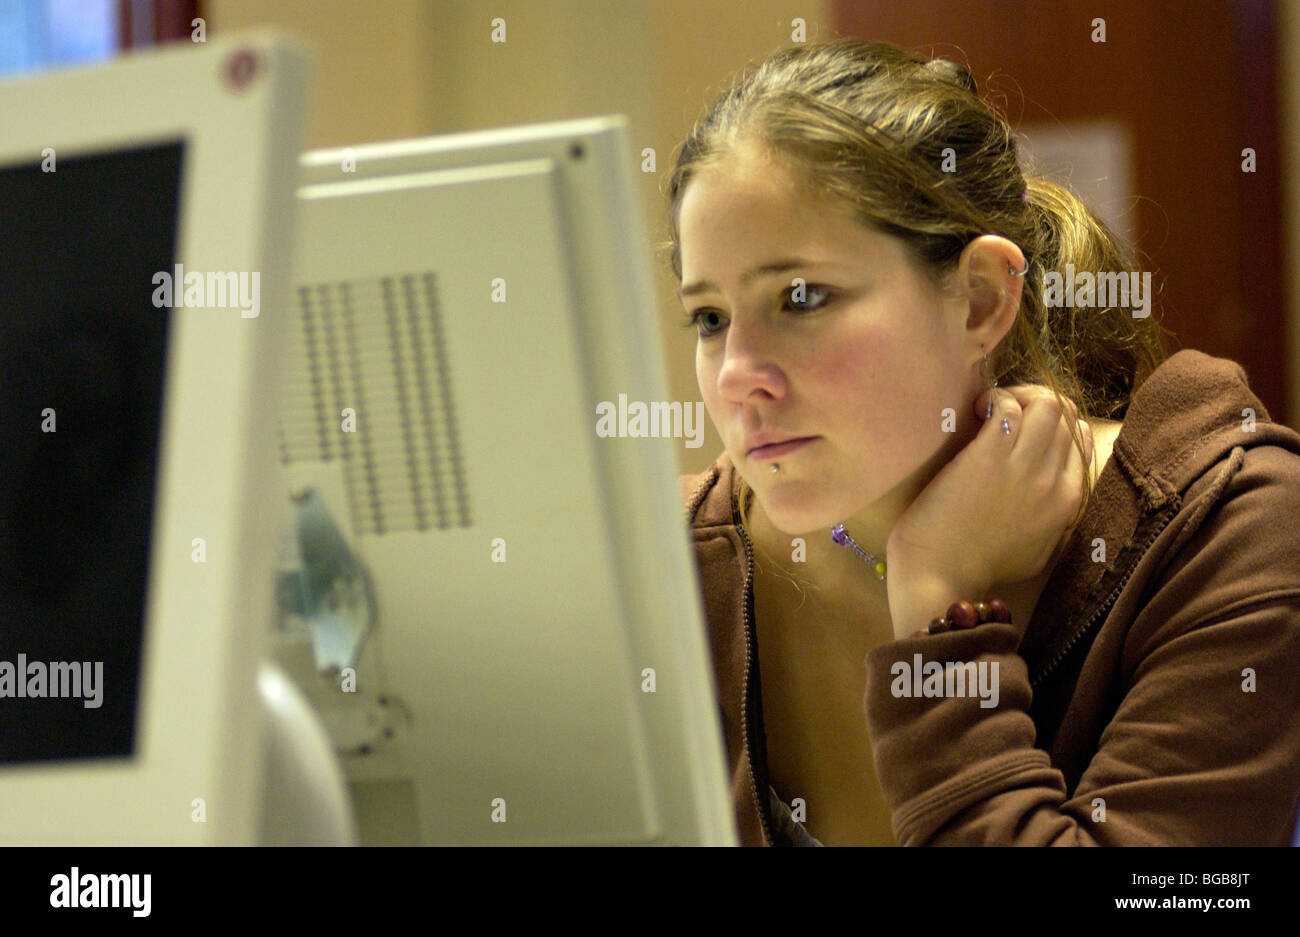 Royalty free photograph of girl college student on computer researching London UK - Stock Image